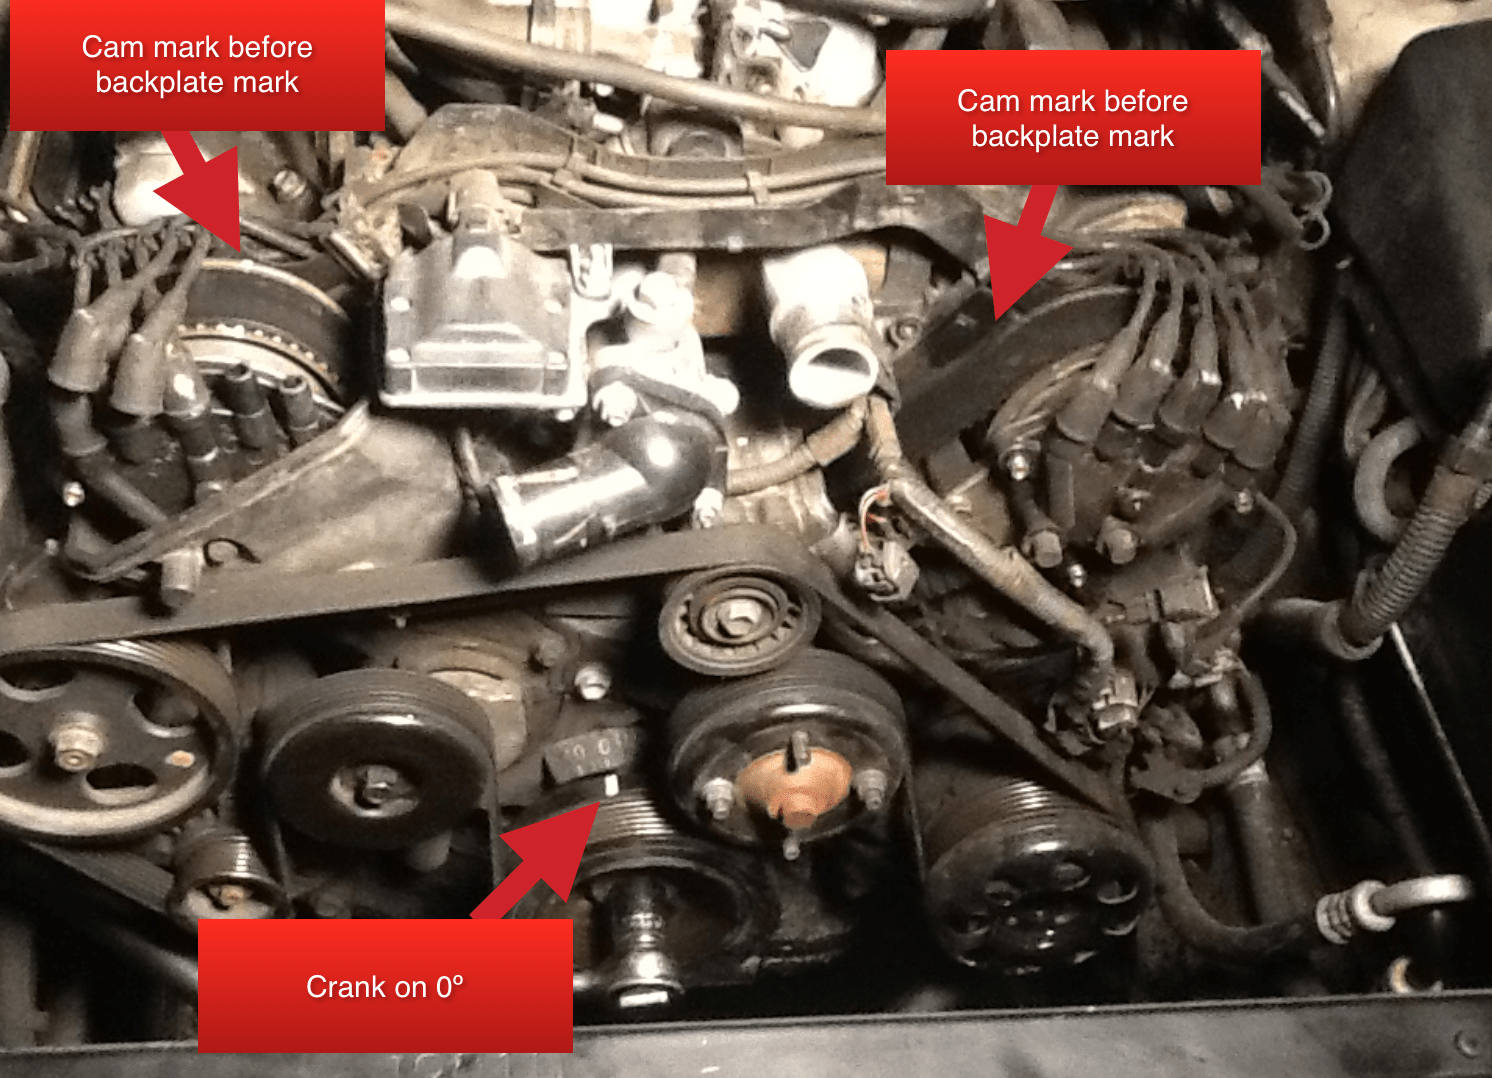 hight resolution of 1997 ls400 timing belt possibly skipped teeth crank on 0 cam